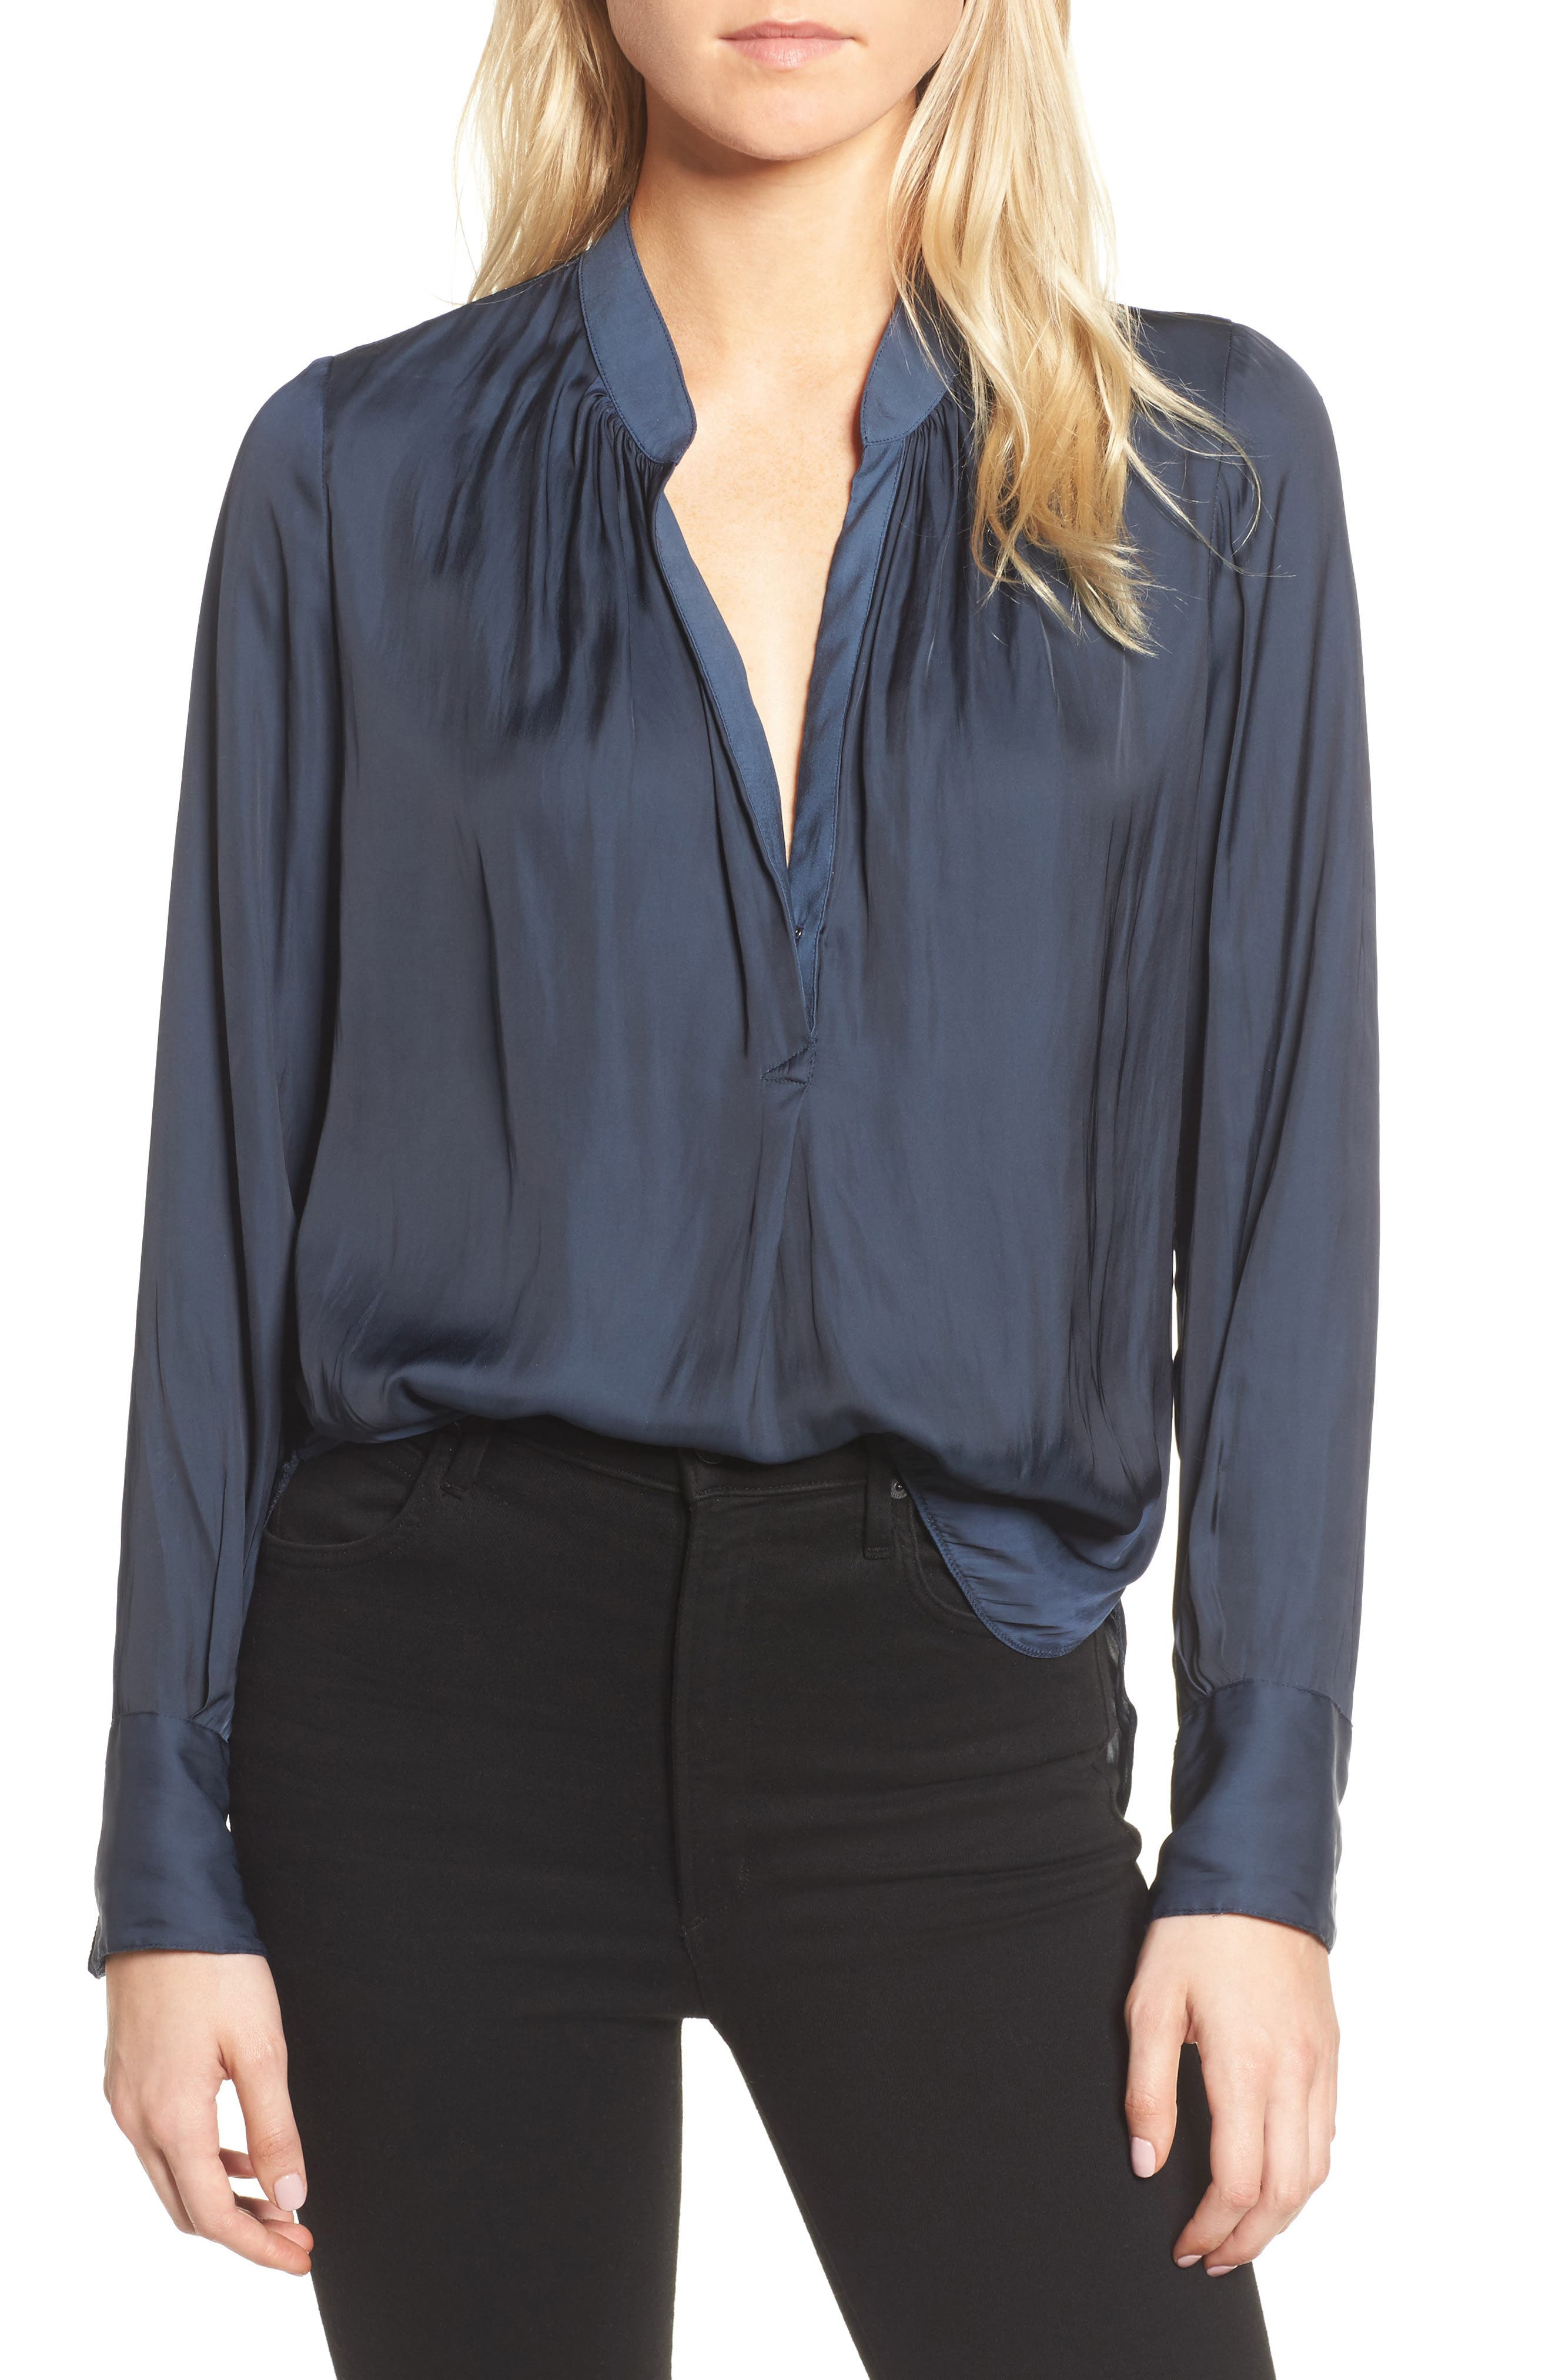 Tink Blouse,                         Main,                         color, Marine